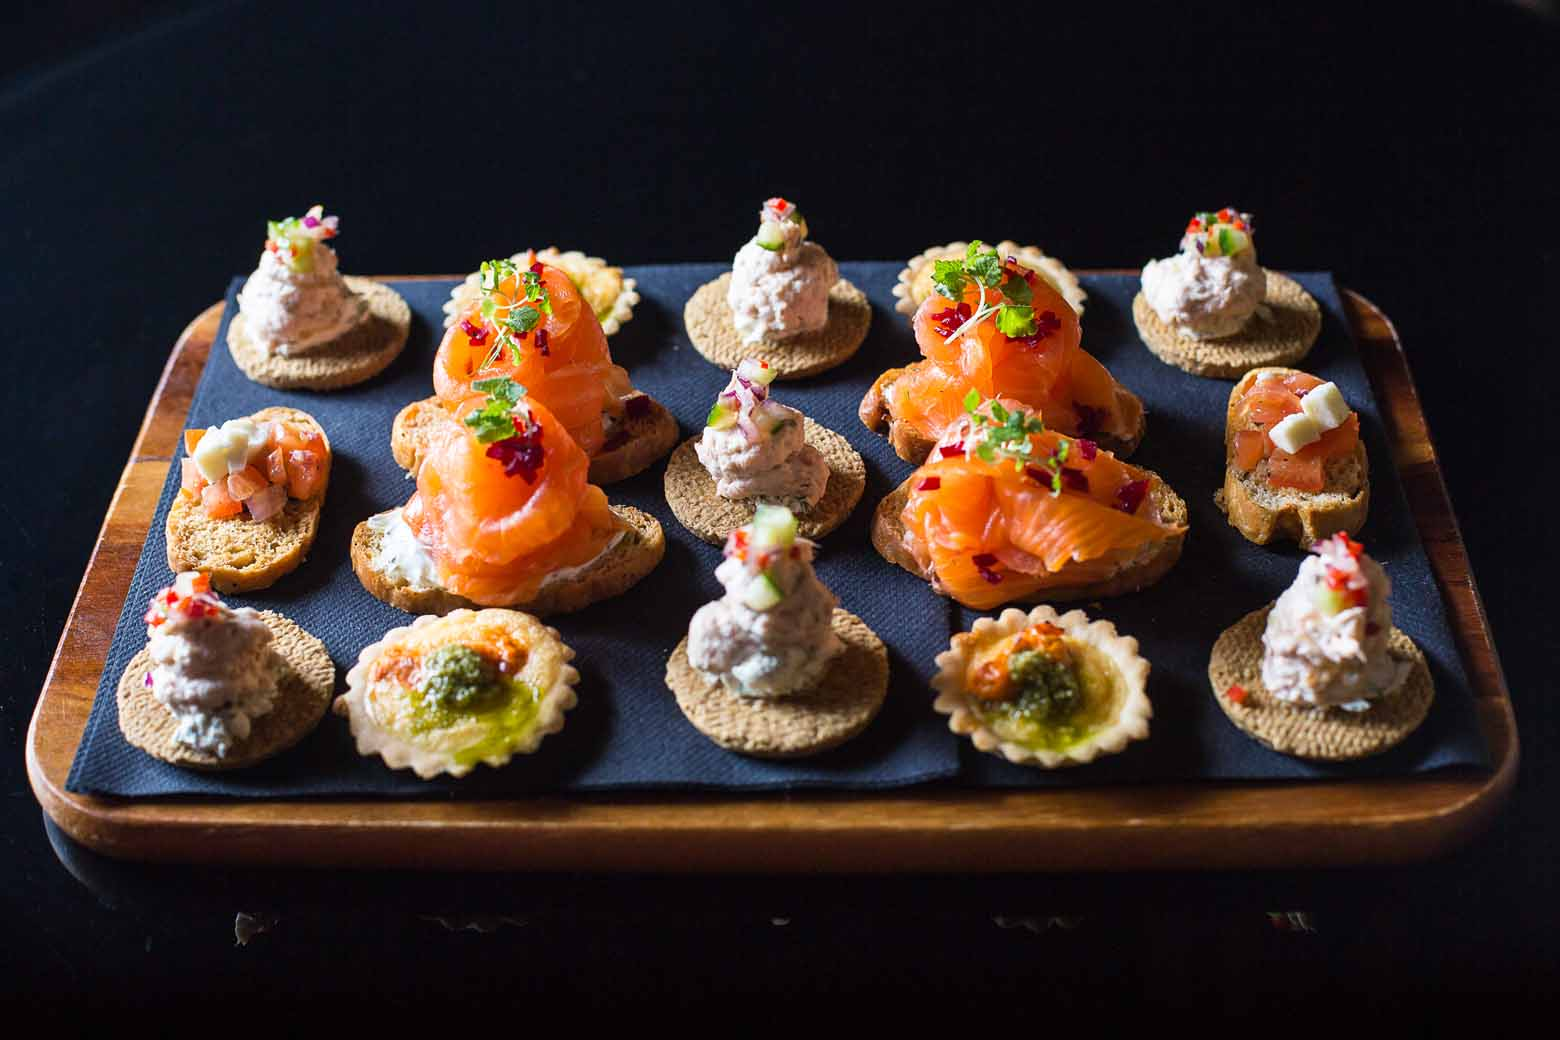 Canapes are popular at events.